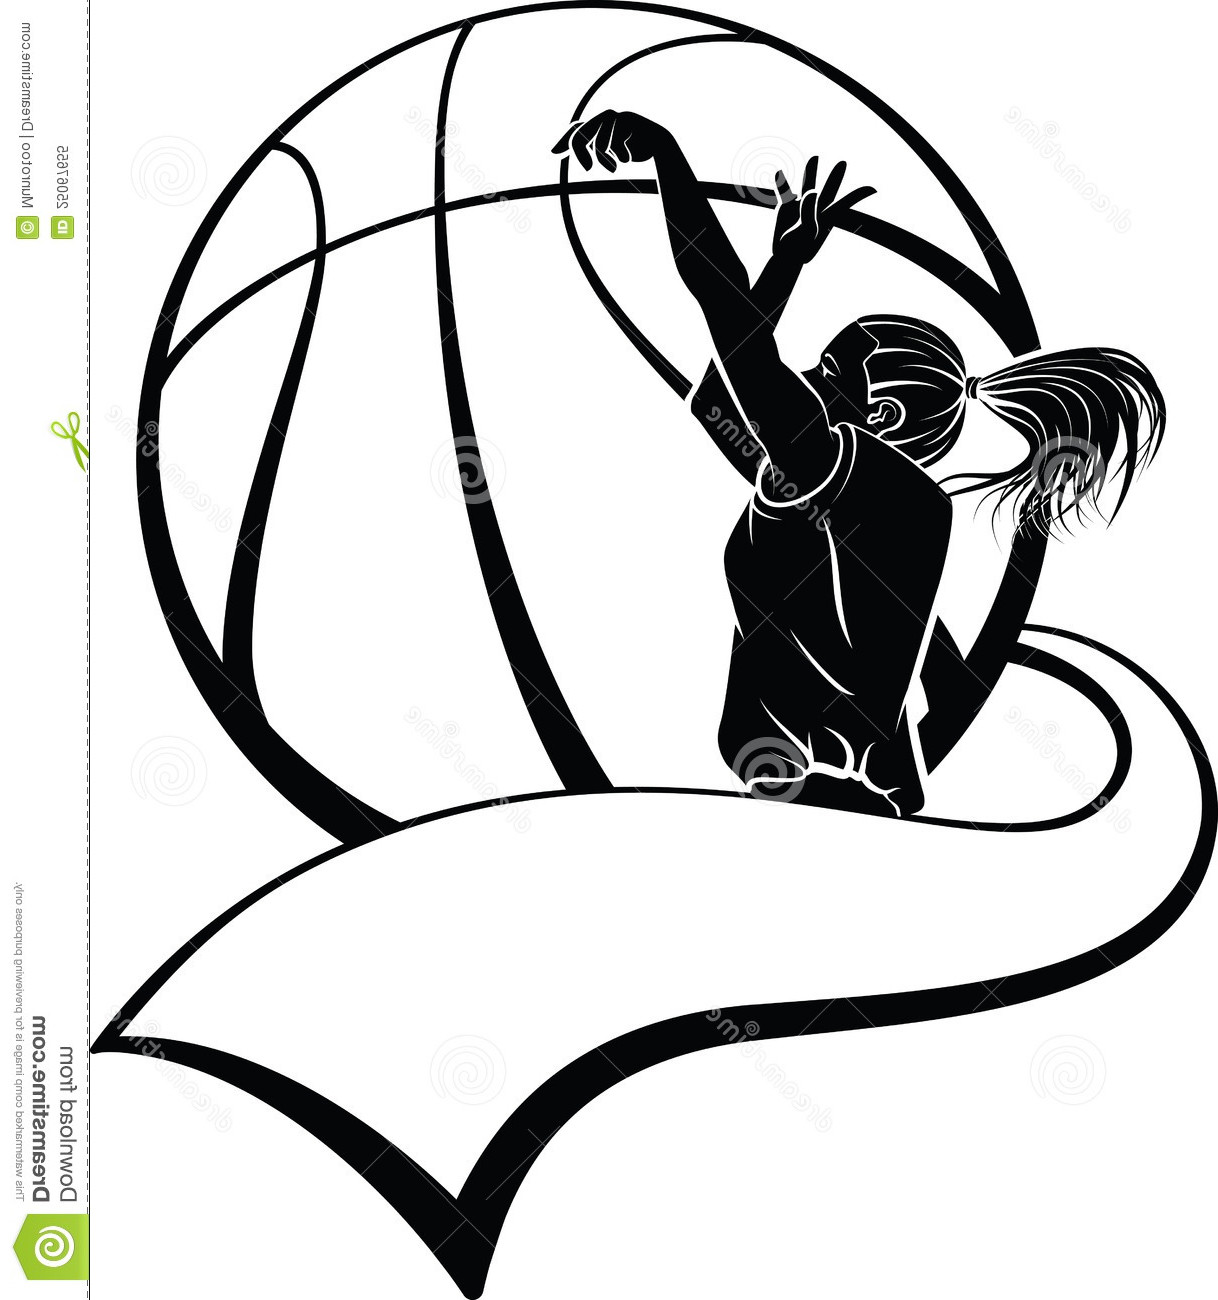 Basketball Player Shooting Clipart Rugvejhu E1392466958220 Jpg